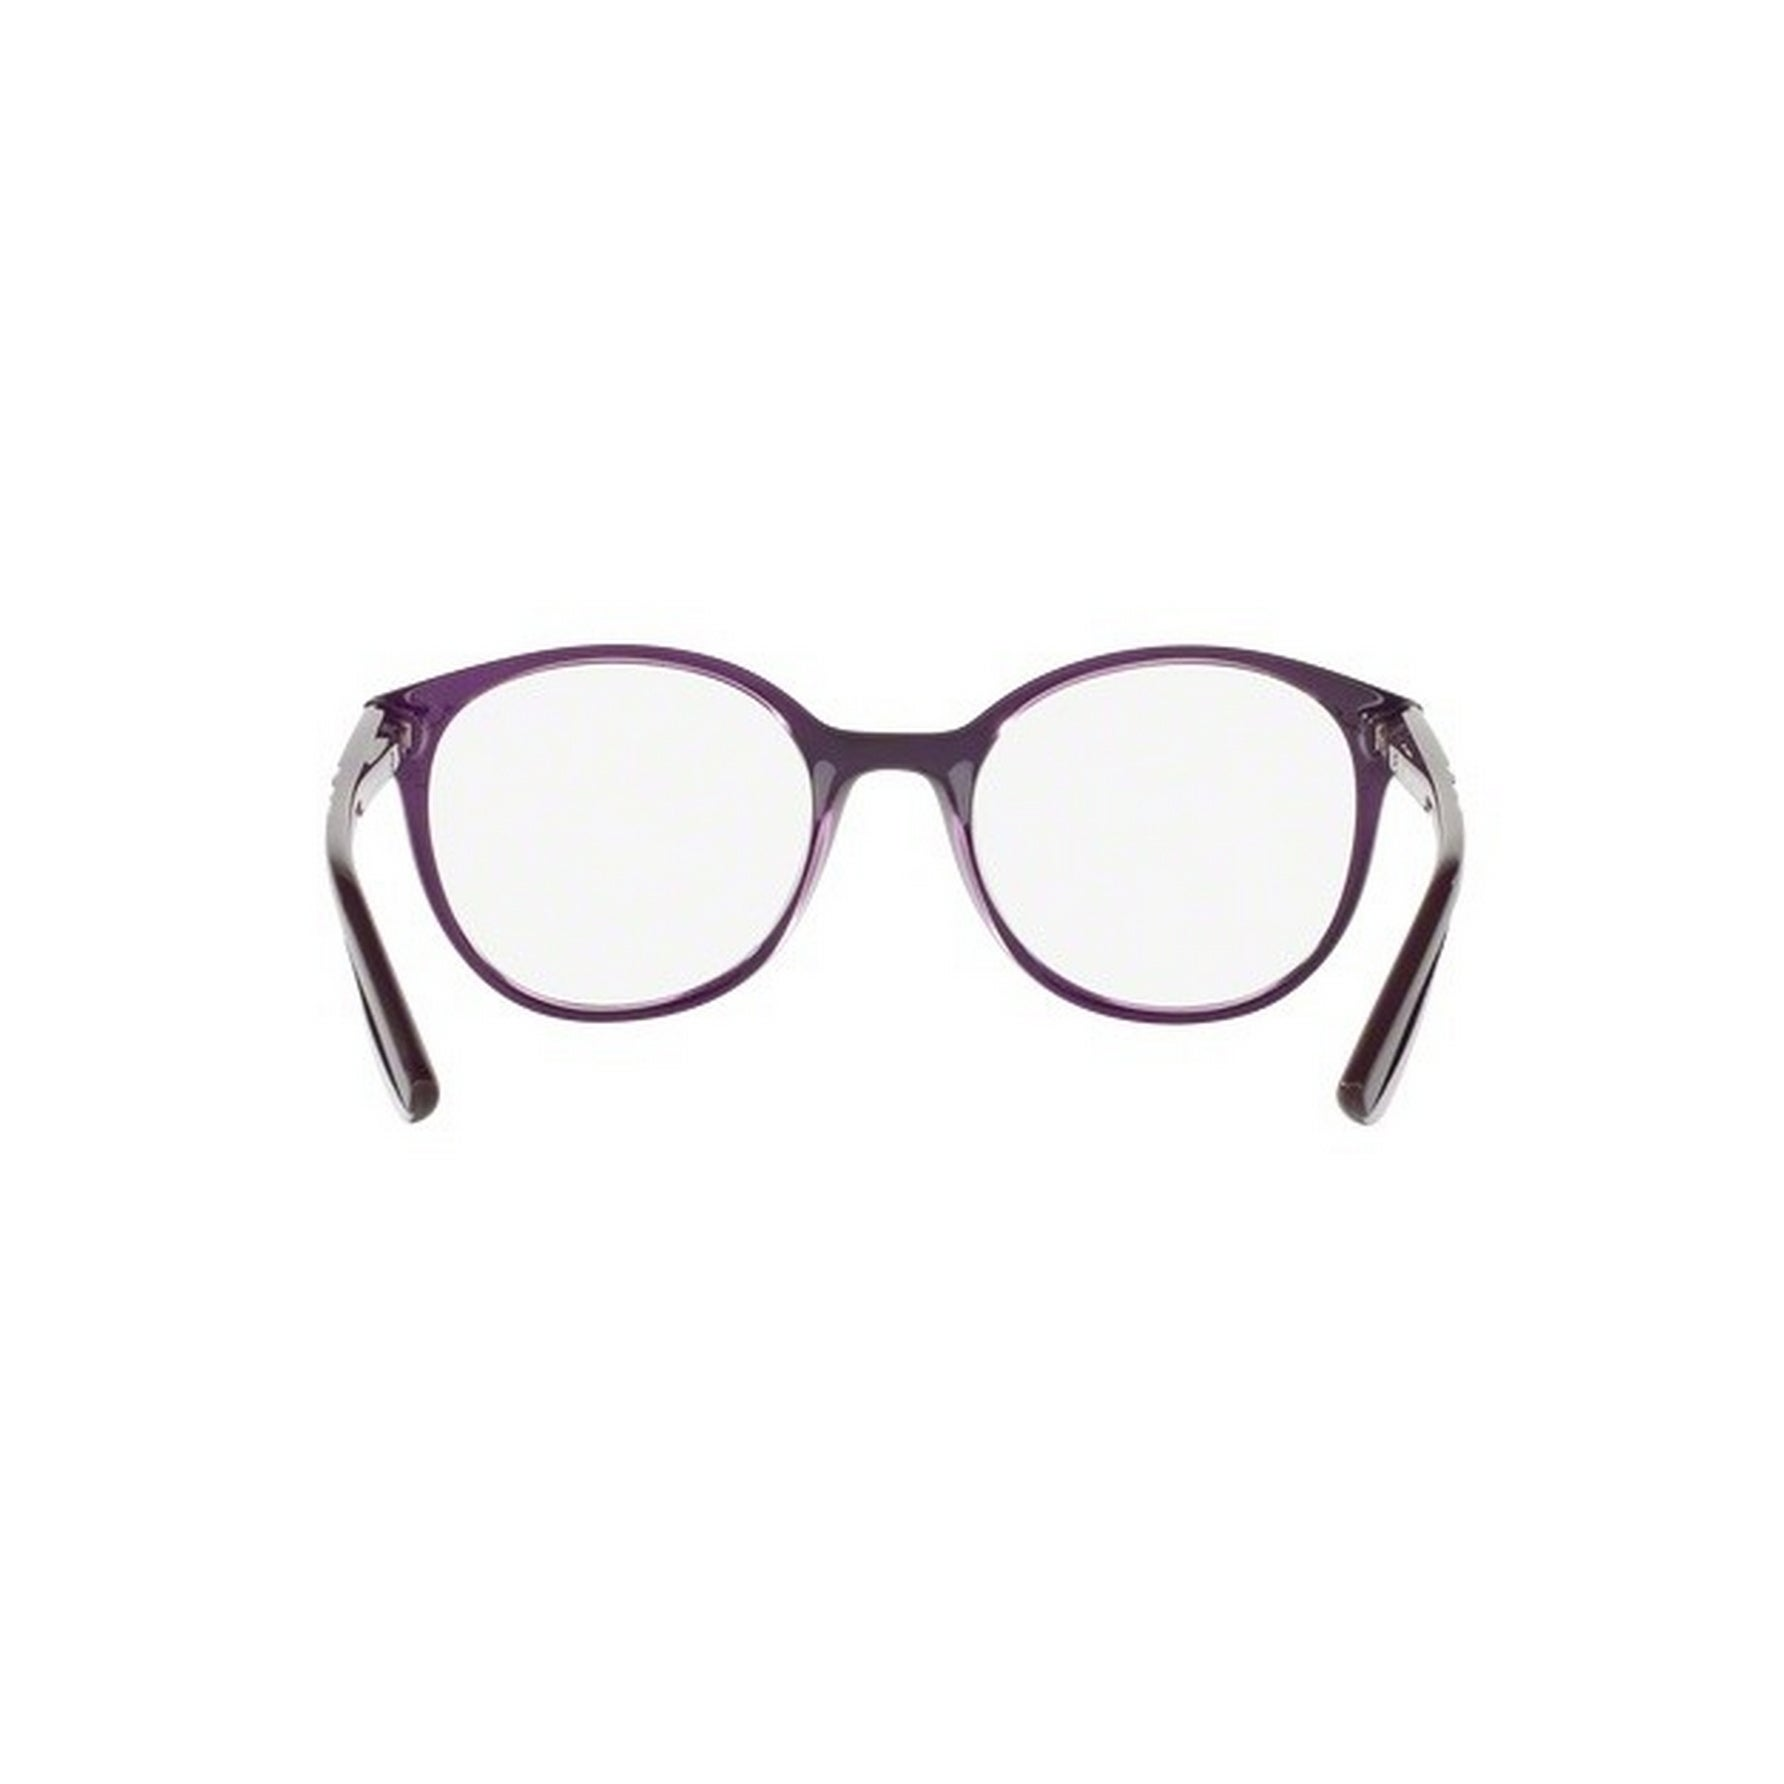 033bc313e717 Shop Vogue Women s VO5104F 2409 51 Round Plastic Purple Clear Eyeglasses - Free  Shipping Today - Overstock.com - 14777764